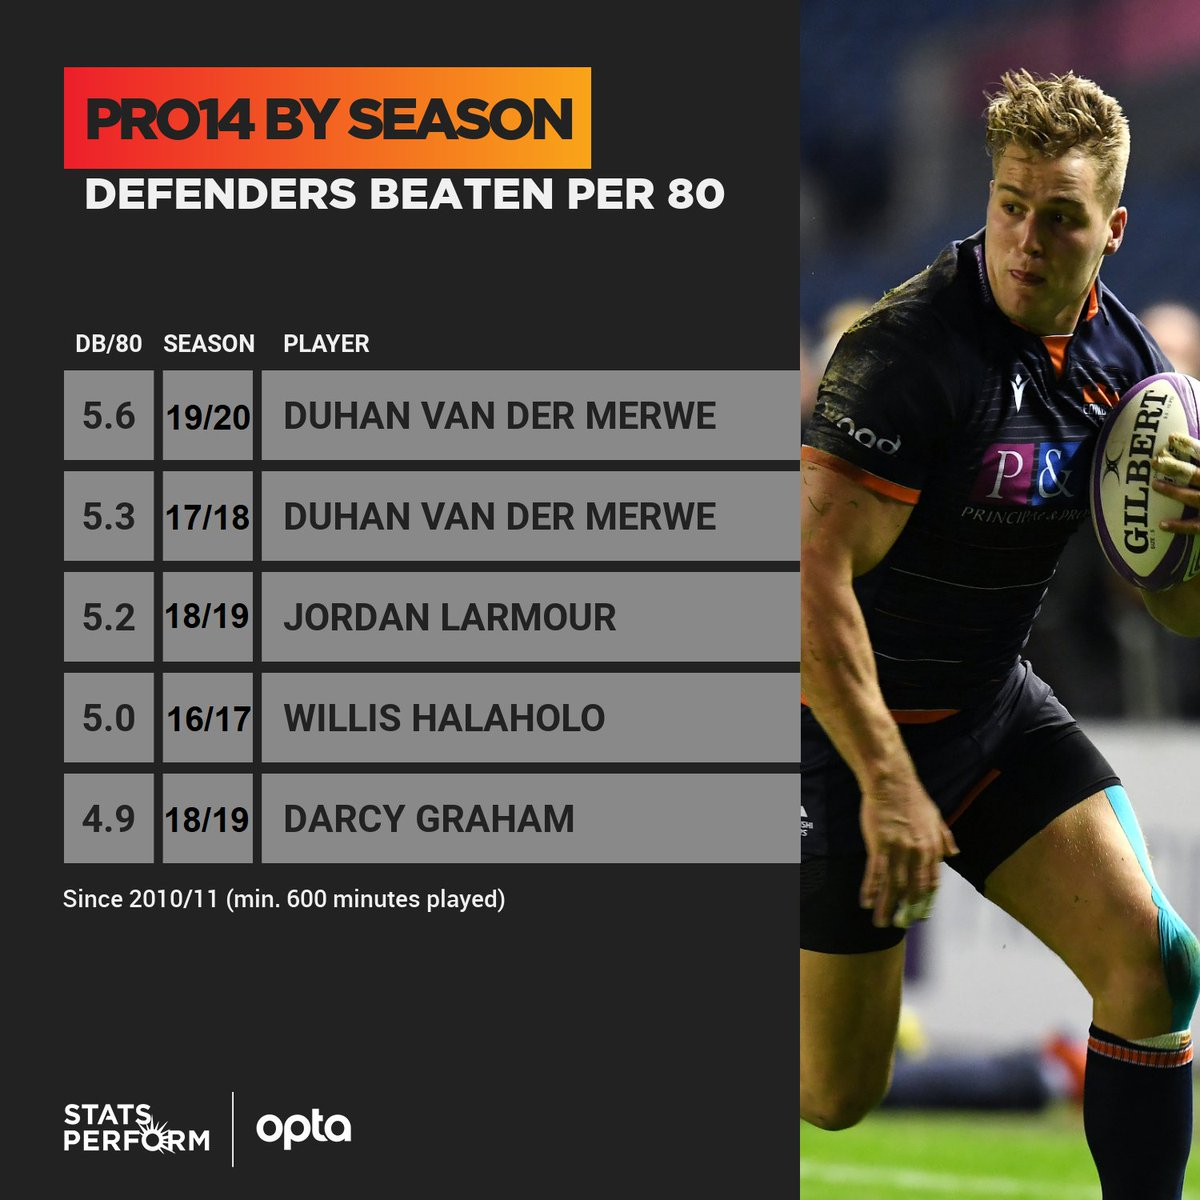 5.6 - @duhanvdmerwe beat 76 defenders in the @PRO14Official in 2019/20 - the 3rd most in a single season - despite playing just 14 games; his tally of 5.6 defenders beaten per 80 minutes is the best rate of any player in a campaign, overtaking his own record from 2017/18. Gunner. https://t.co/Mx8vE2CKix